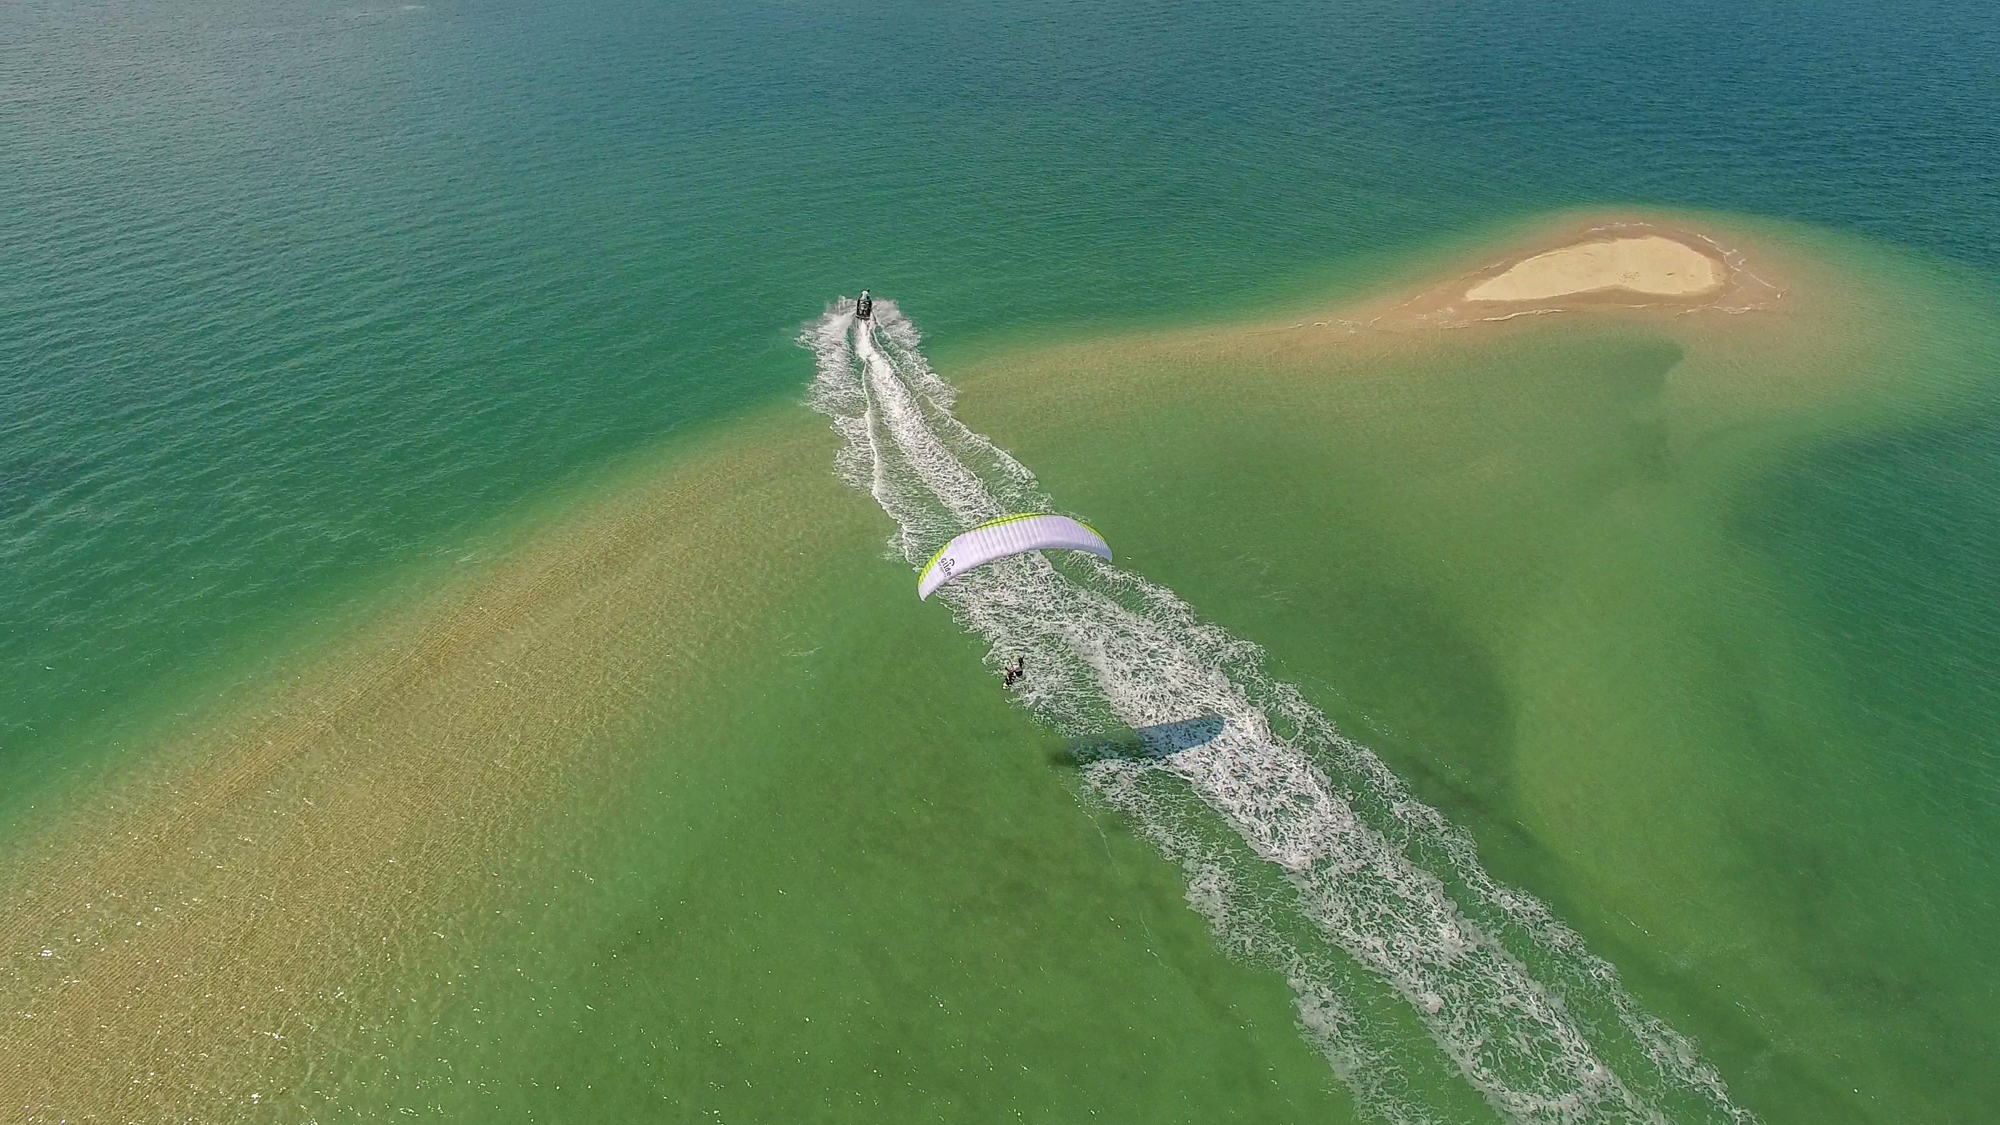 Don't Try This at Home James Bond Martin Schricke Francois Ragolski Jetski paragliding island